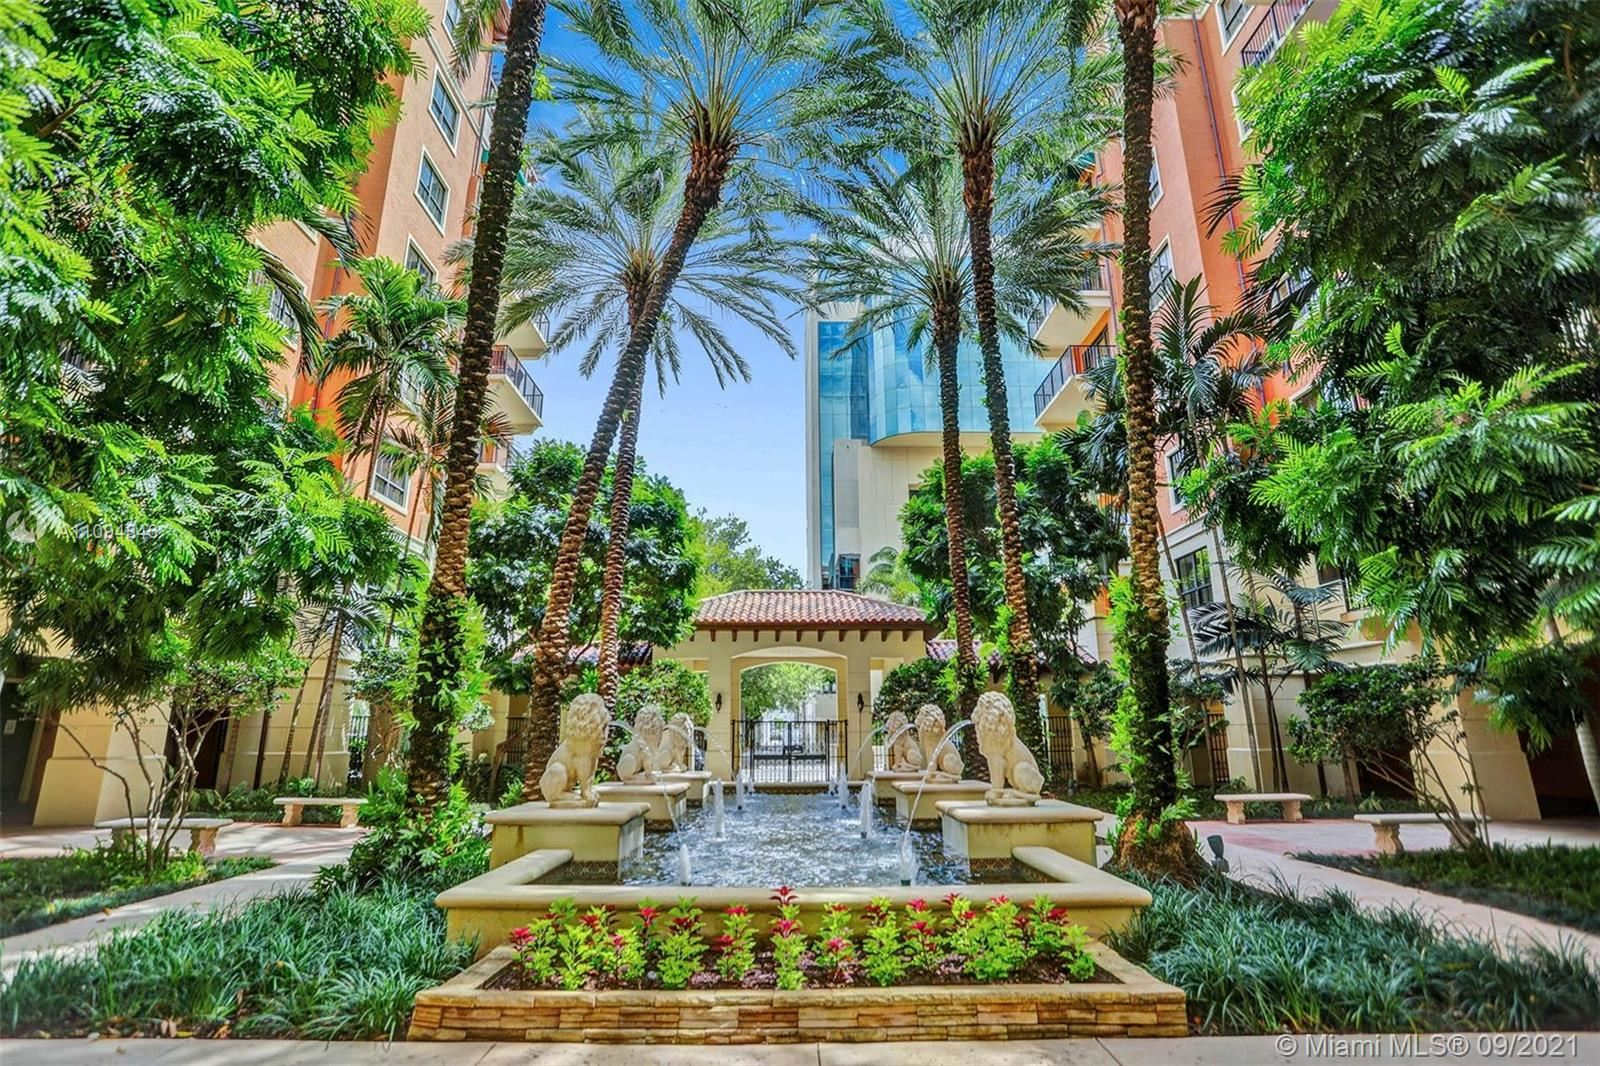 100 Andalusia Ave #313, Coral Gables, FL 33134 - #: A11094846